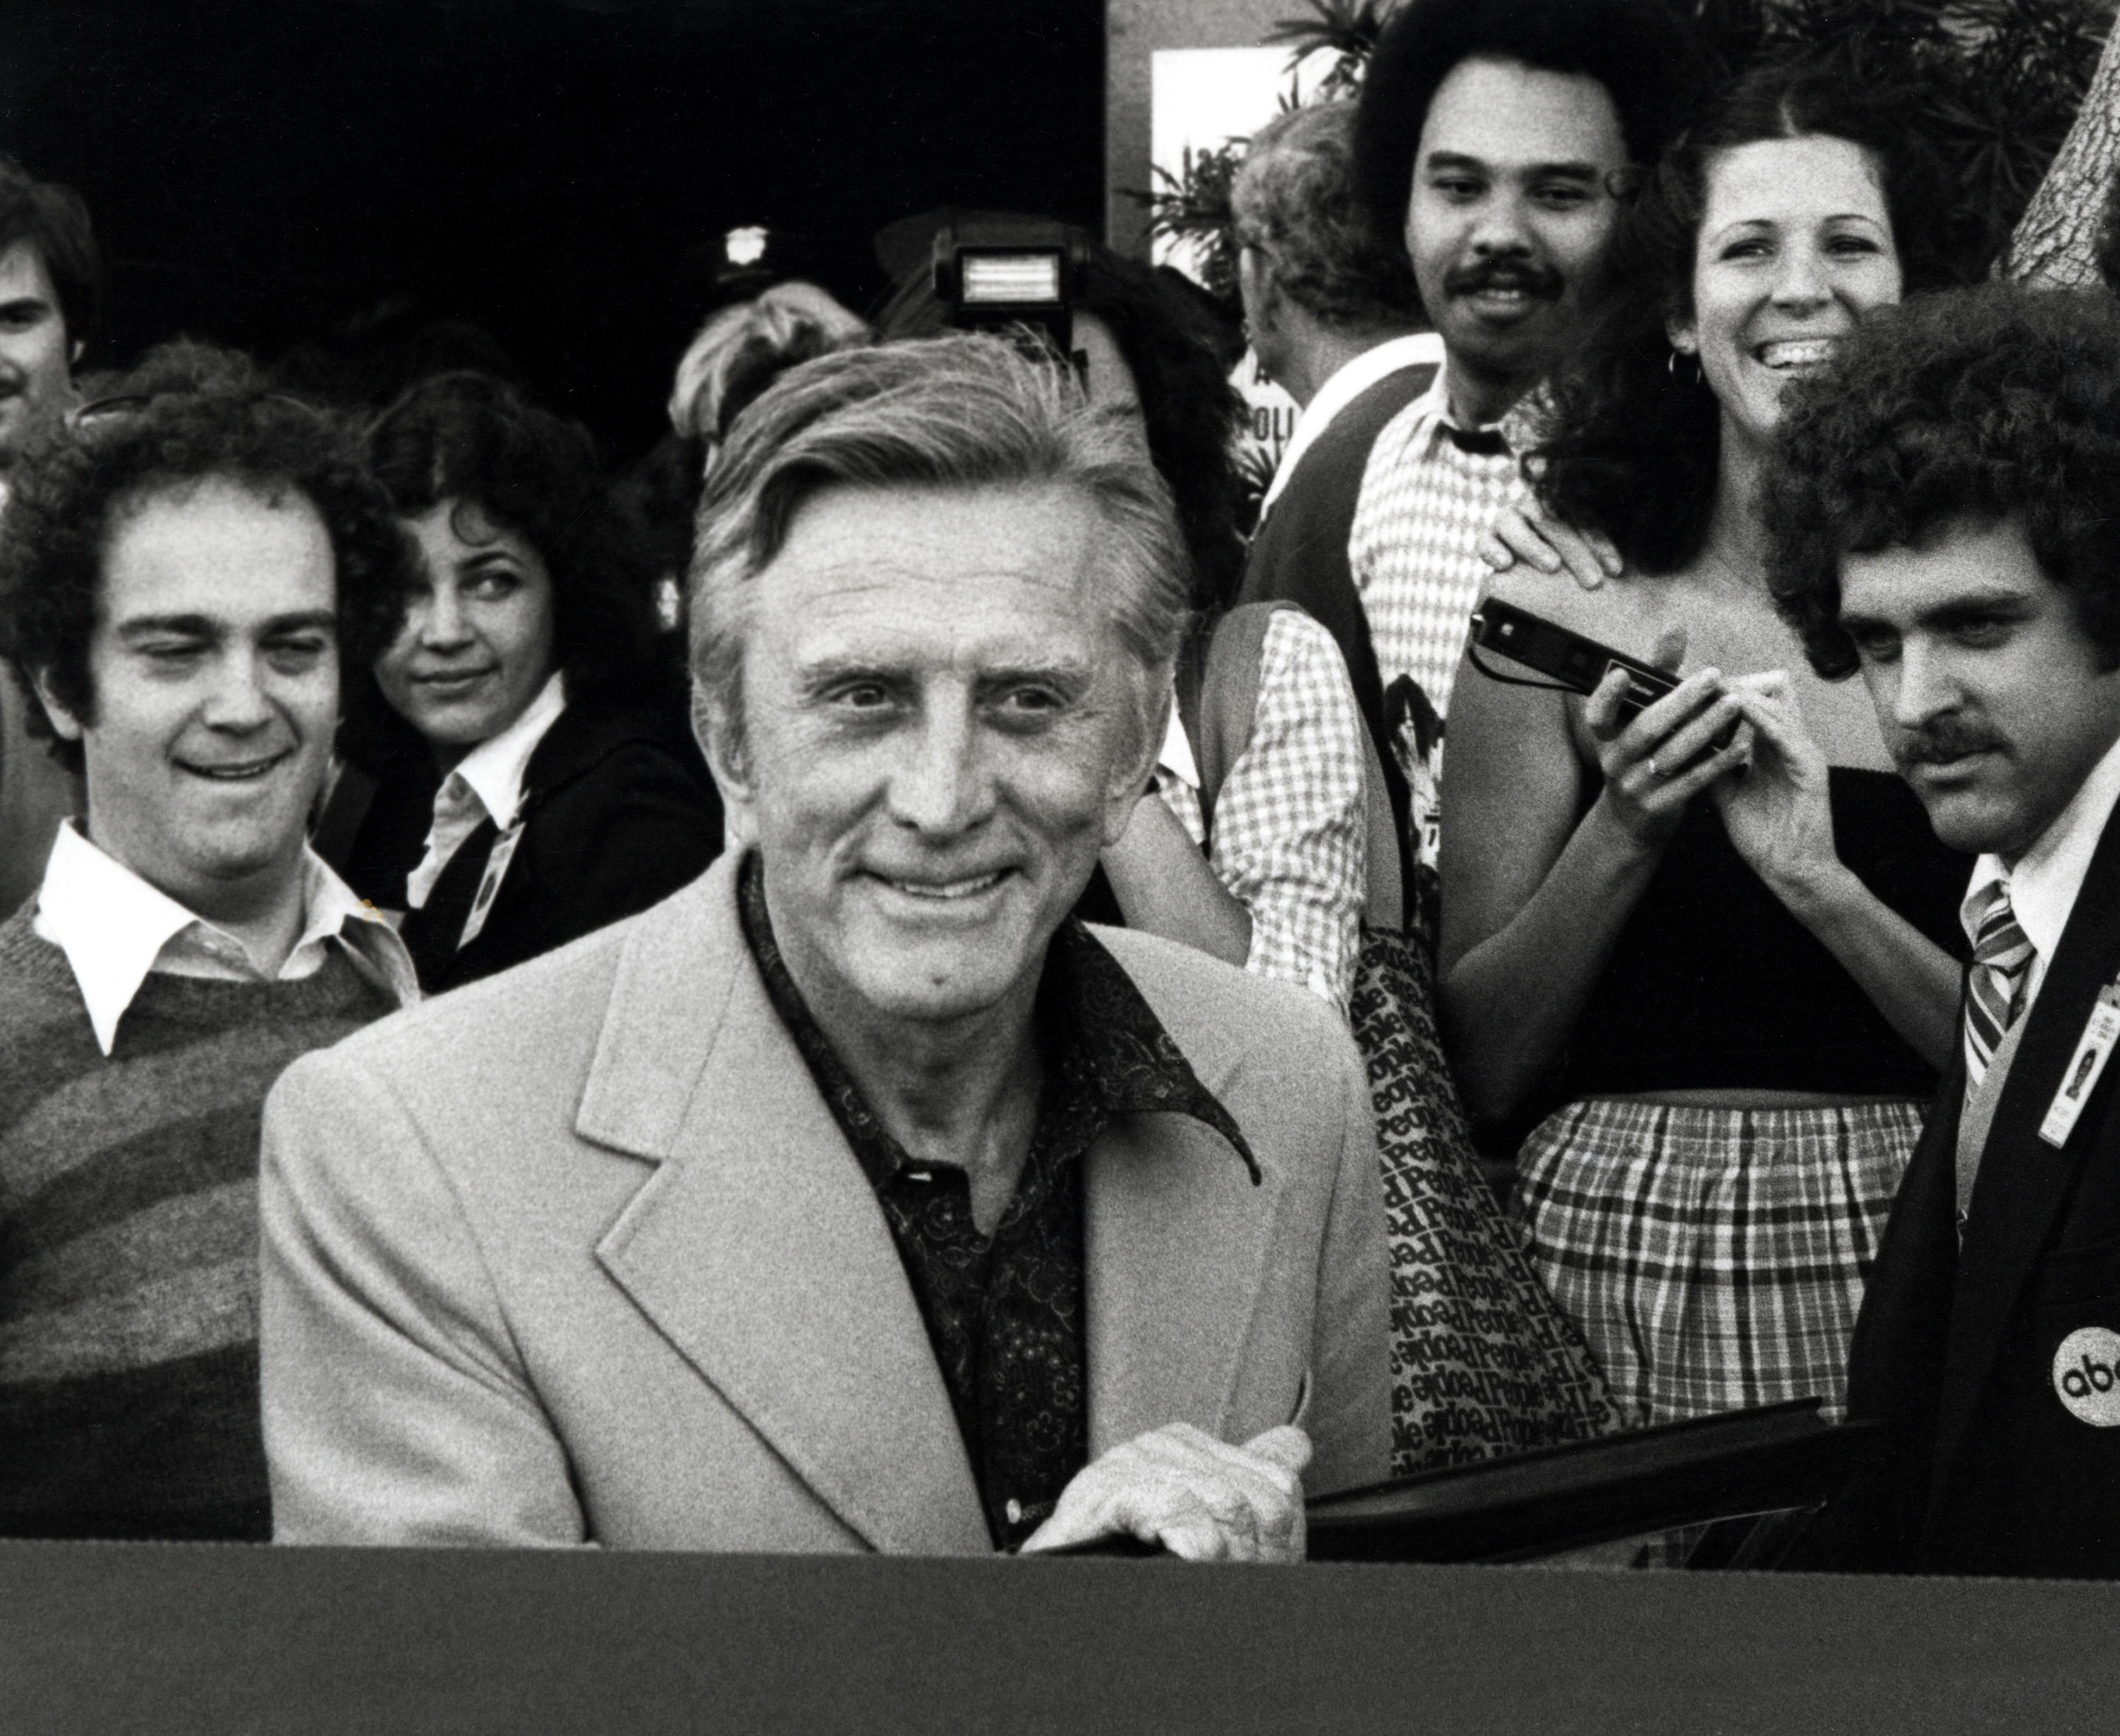 Kirk Douglas during Kirk Douglas Leaving Academy Awards Rehearsals - April 12, 1978, United States. (Photo by Ron Galella, Ltd./WireImage)